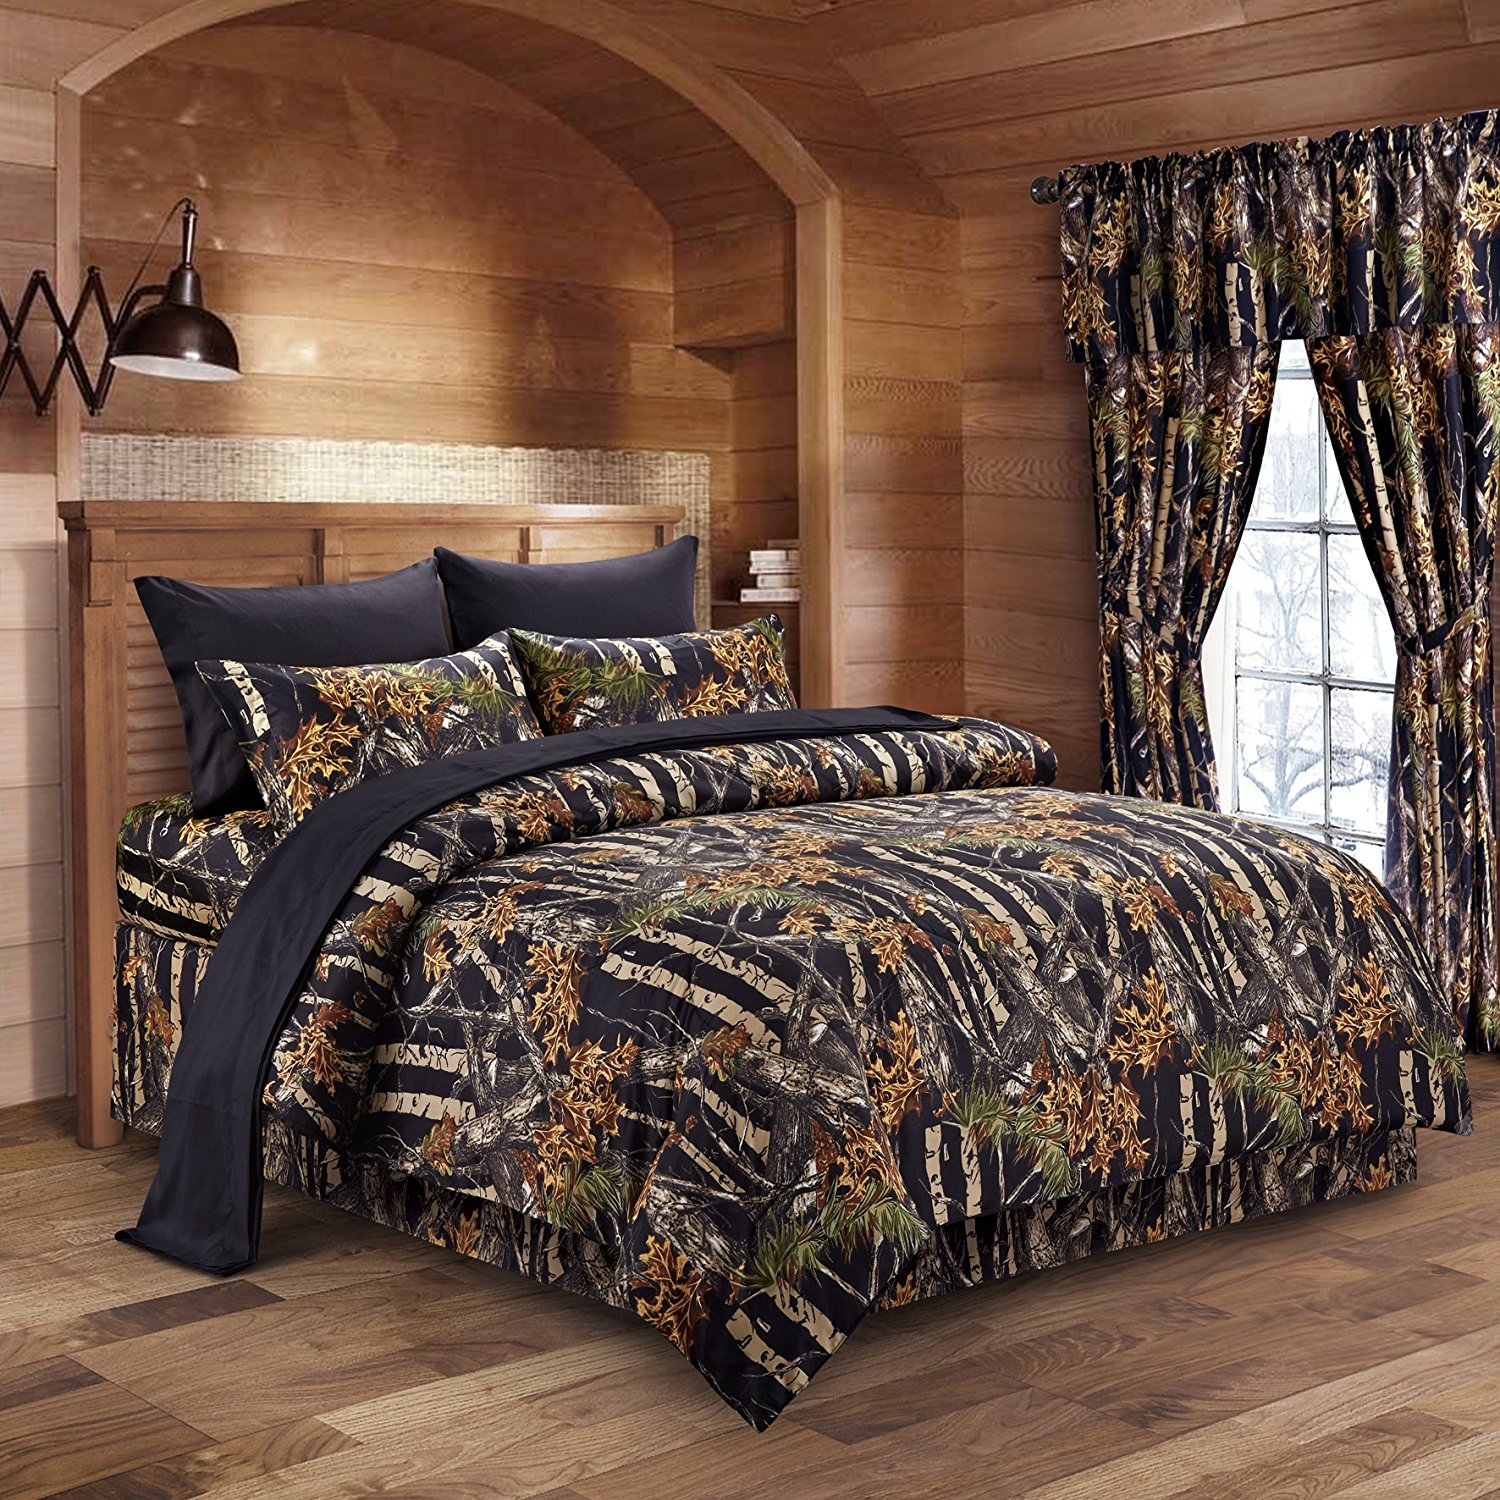 lime camouflage ideas green camo bed bedding